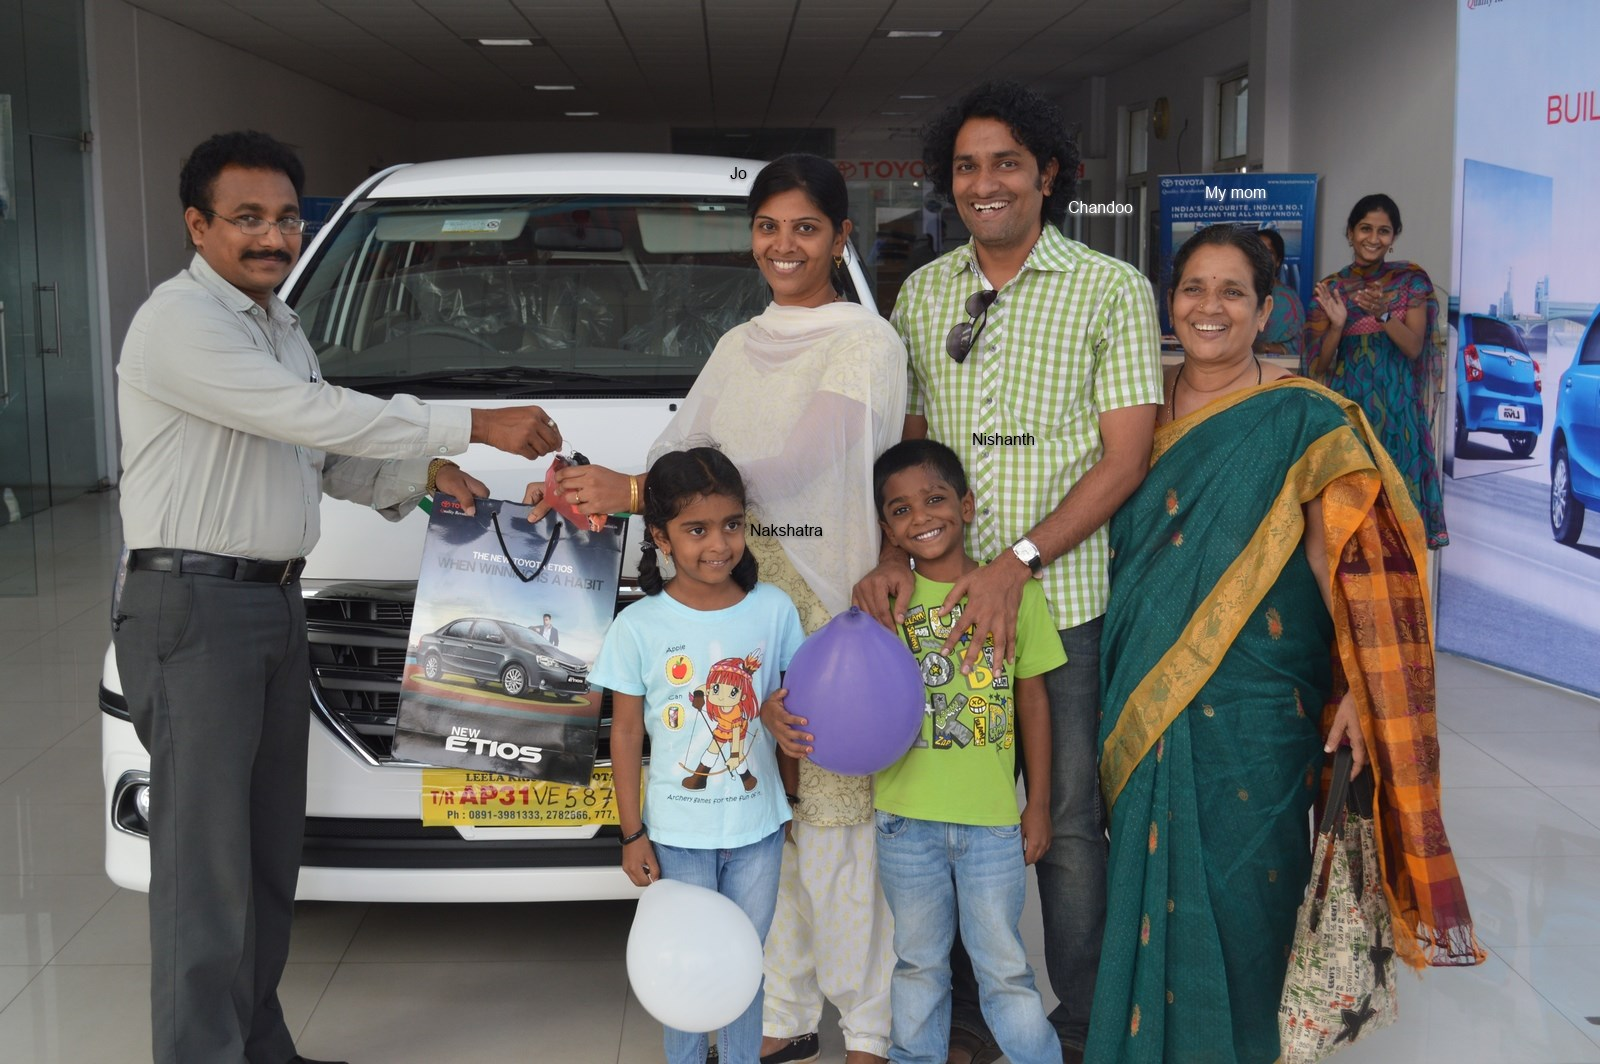 Thank you and Excel, We have a new car | Chandoo.org - Learn ...